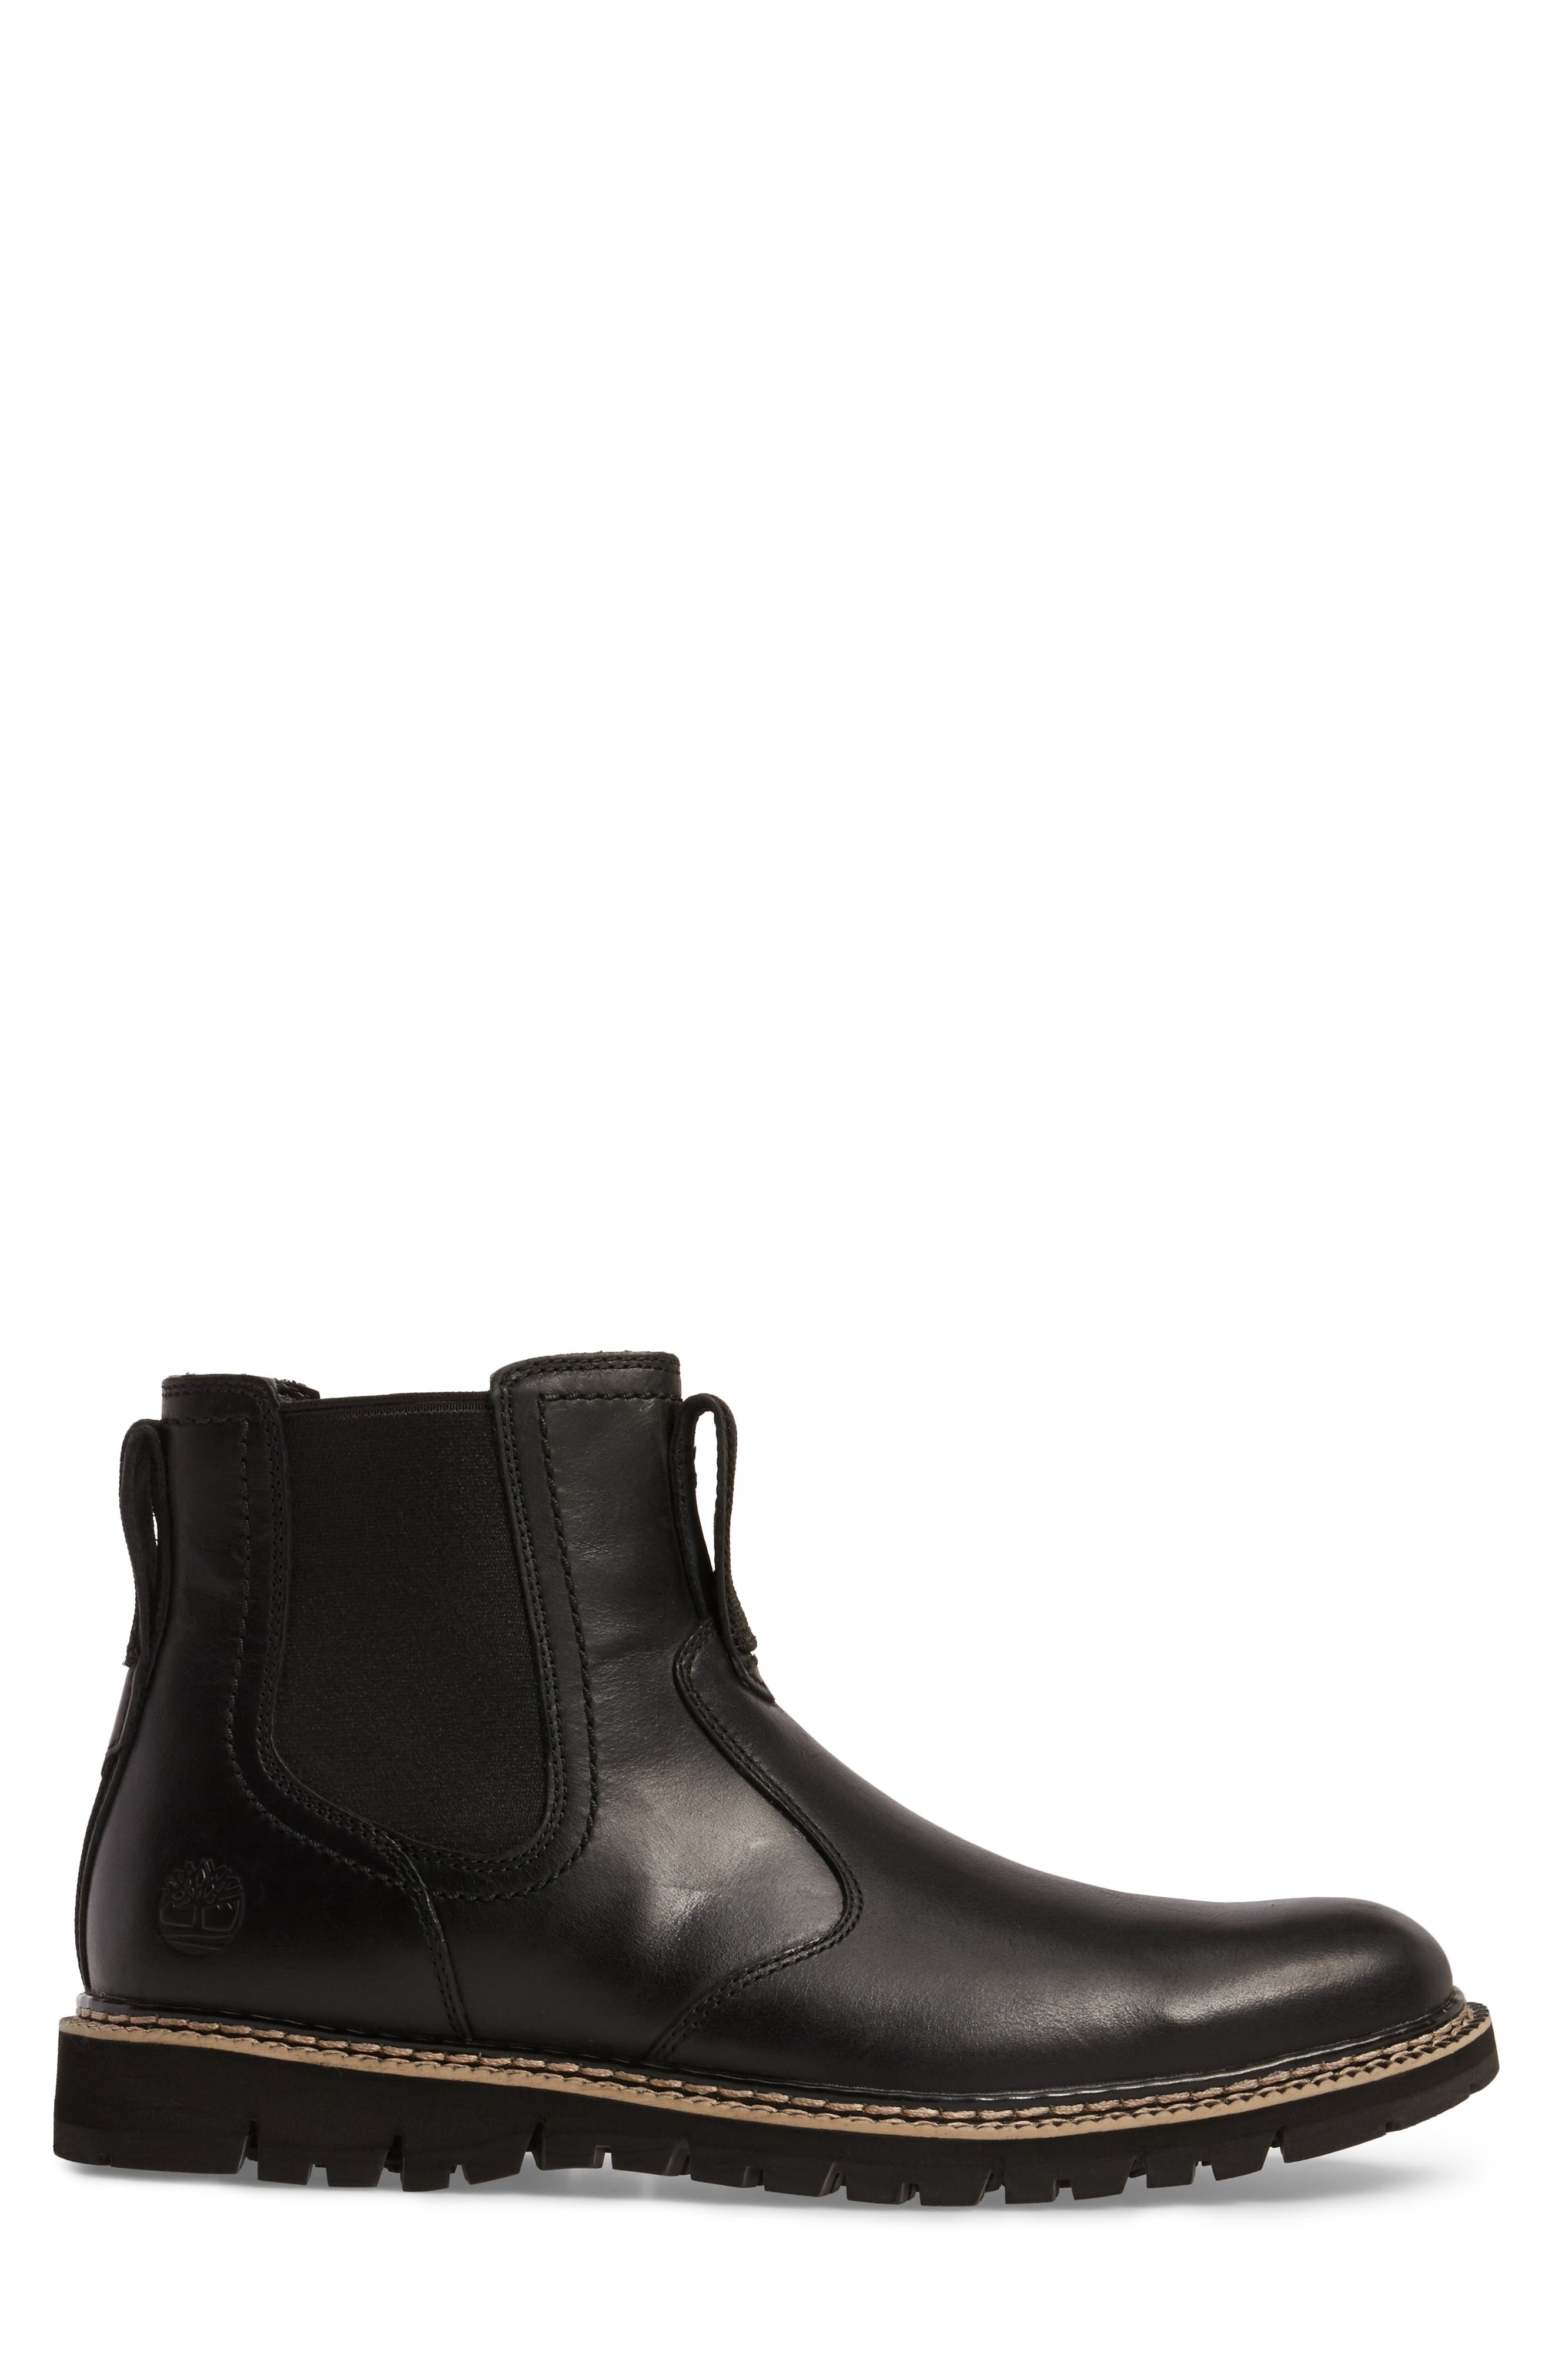 Alternate Image 3  - Timberland Britton Hill Chelsea Boot (Men)